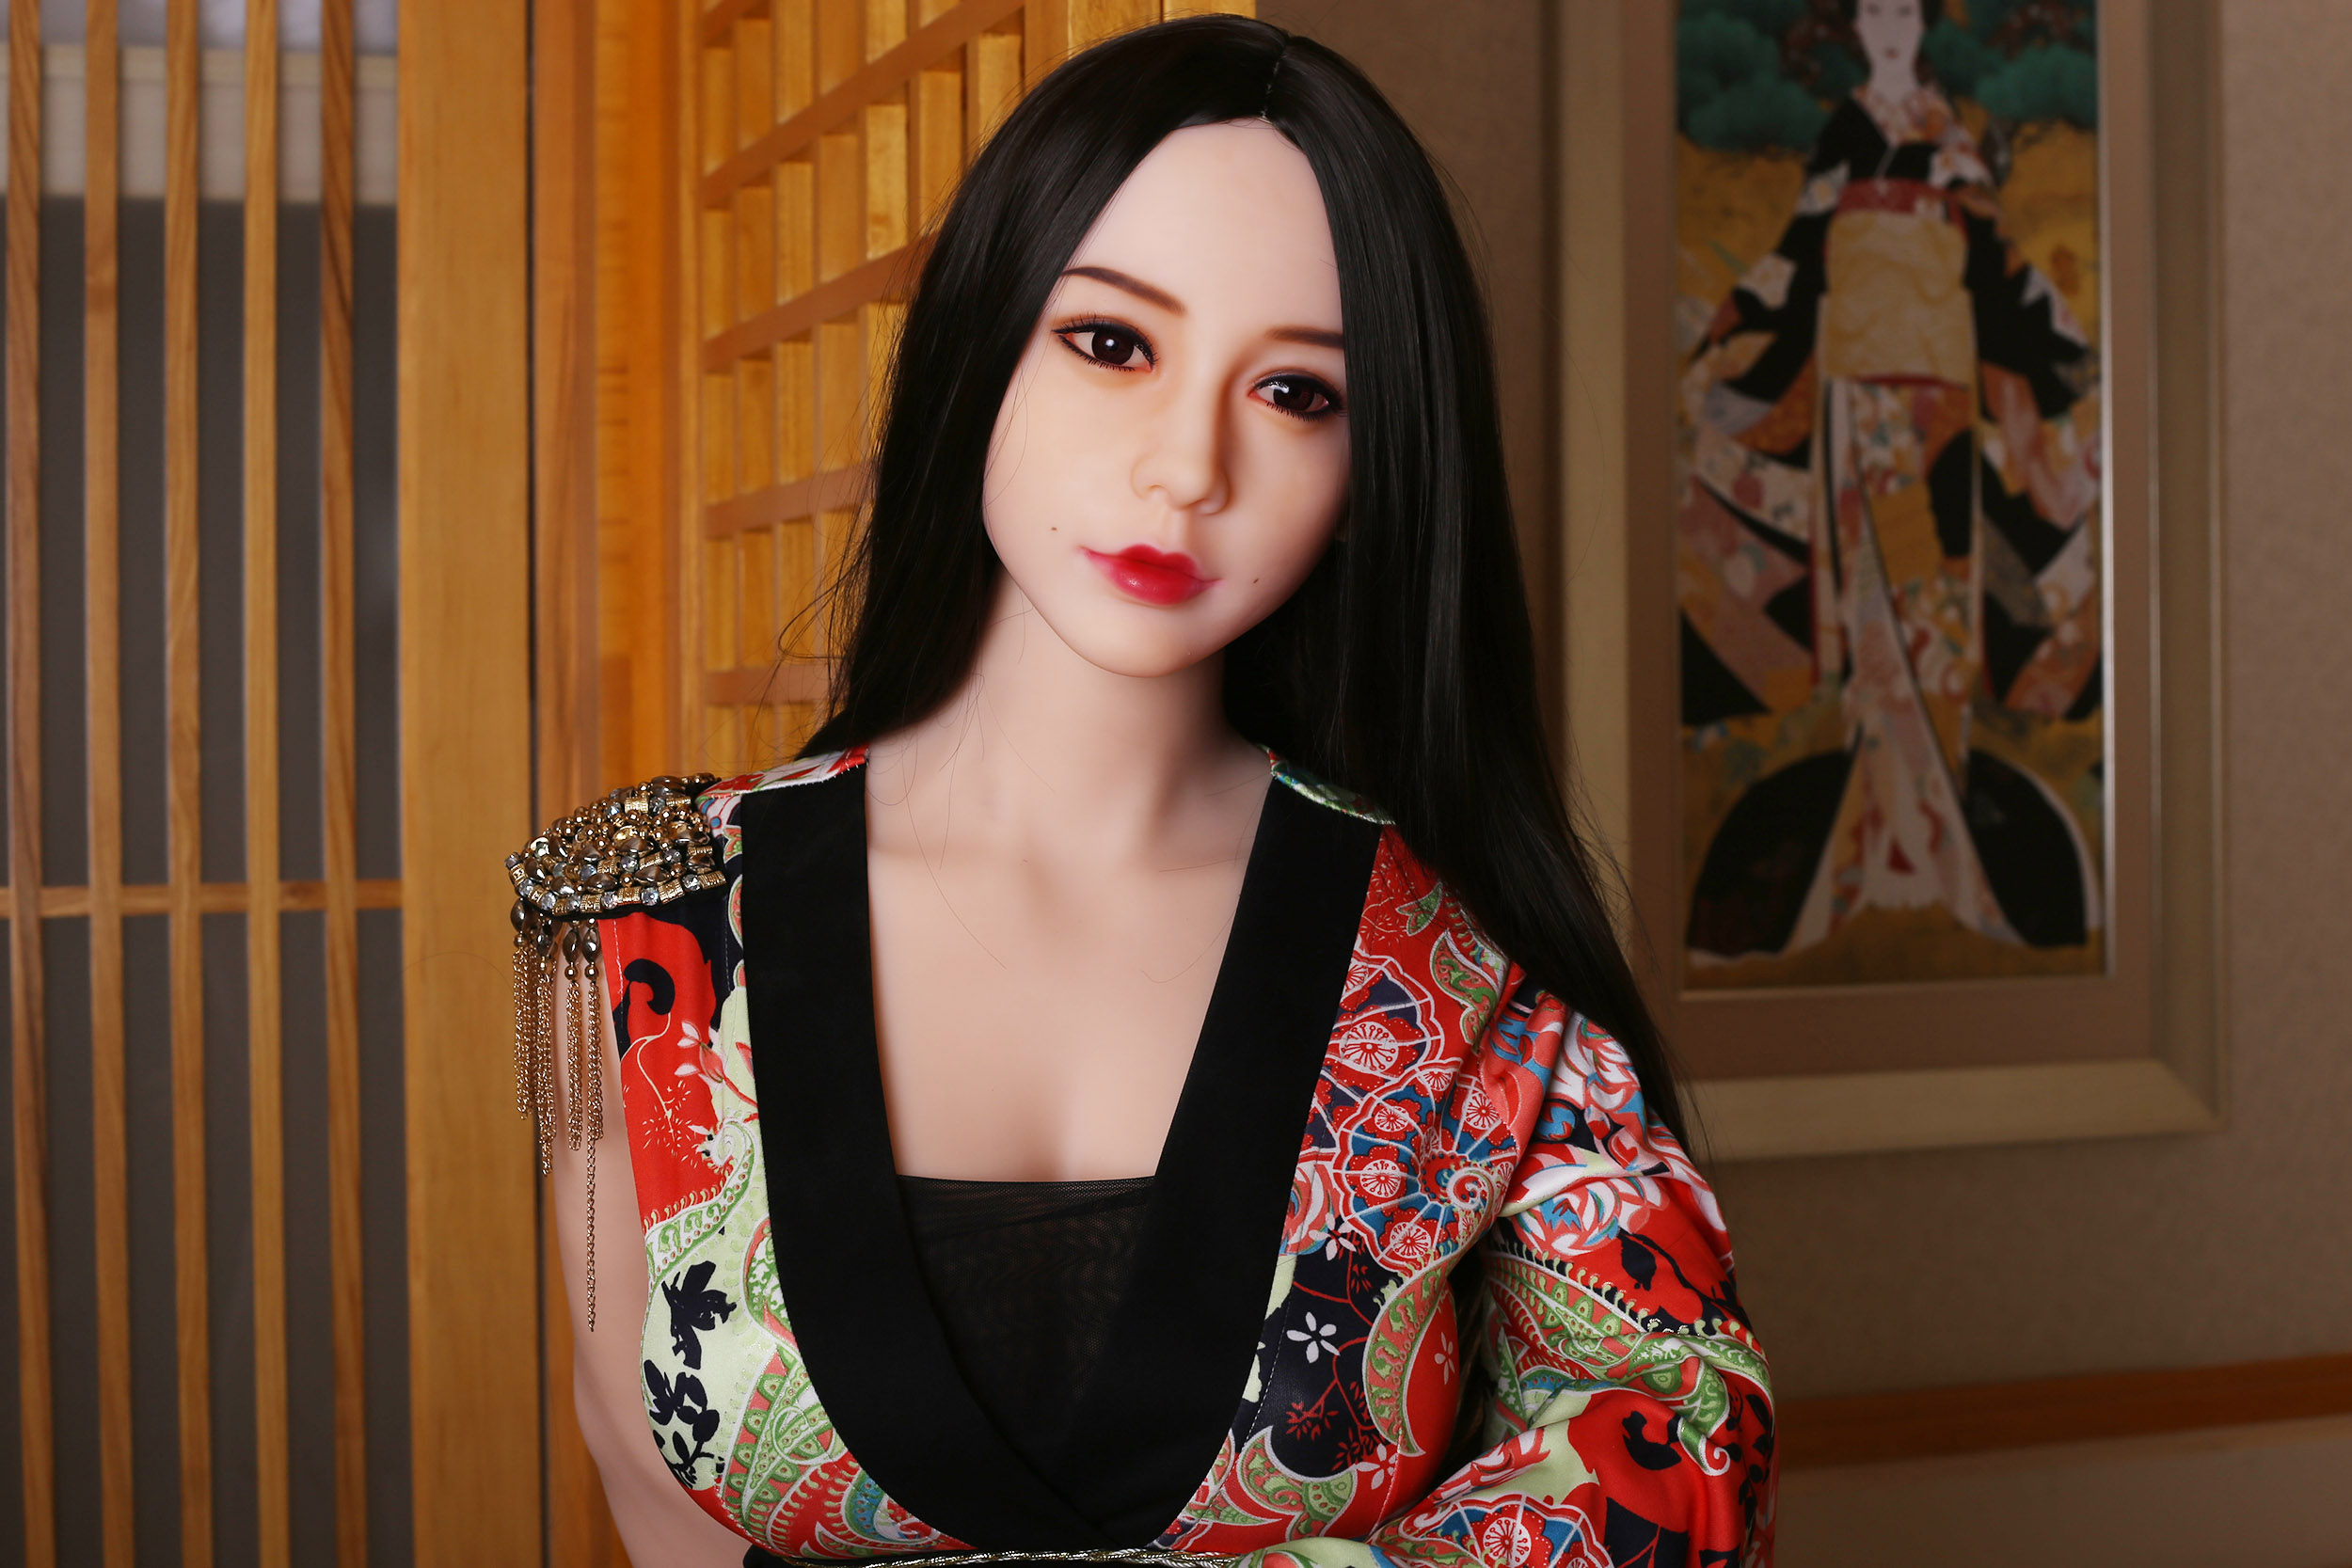 <font><b>168cm</b></font> <font><b>Silicone</b></font> <font><b>Sex</b></font> <font><b>Dolls</b></font> with Skeleton Japanese Full Adult Anime kimono Oral Love <font><b>Doll</b></font> Realistic Vagina Toys for Men Big Breast image